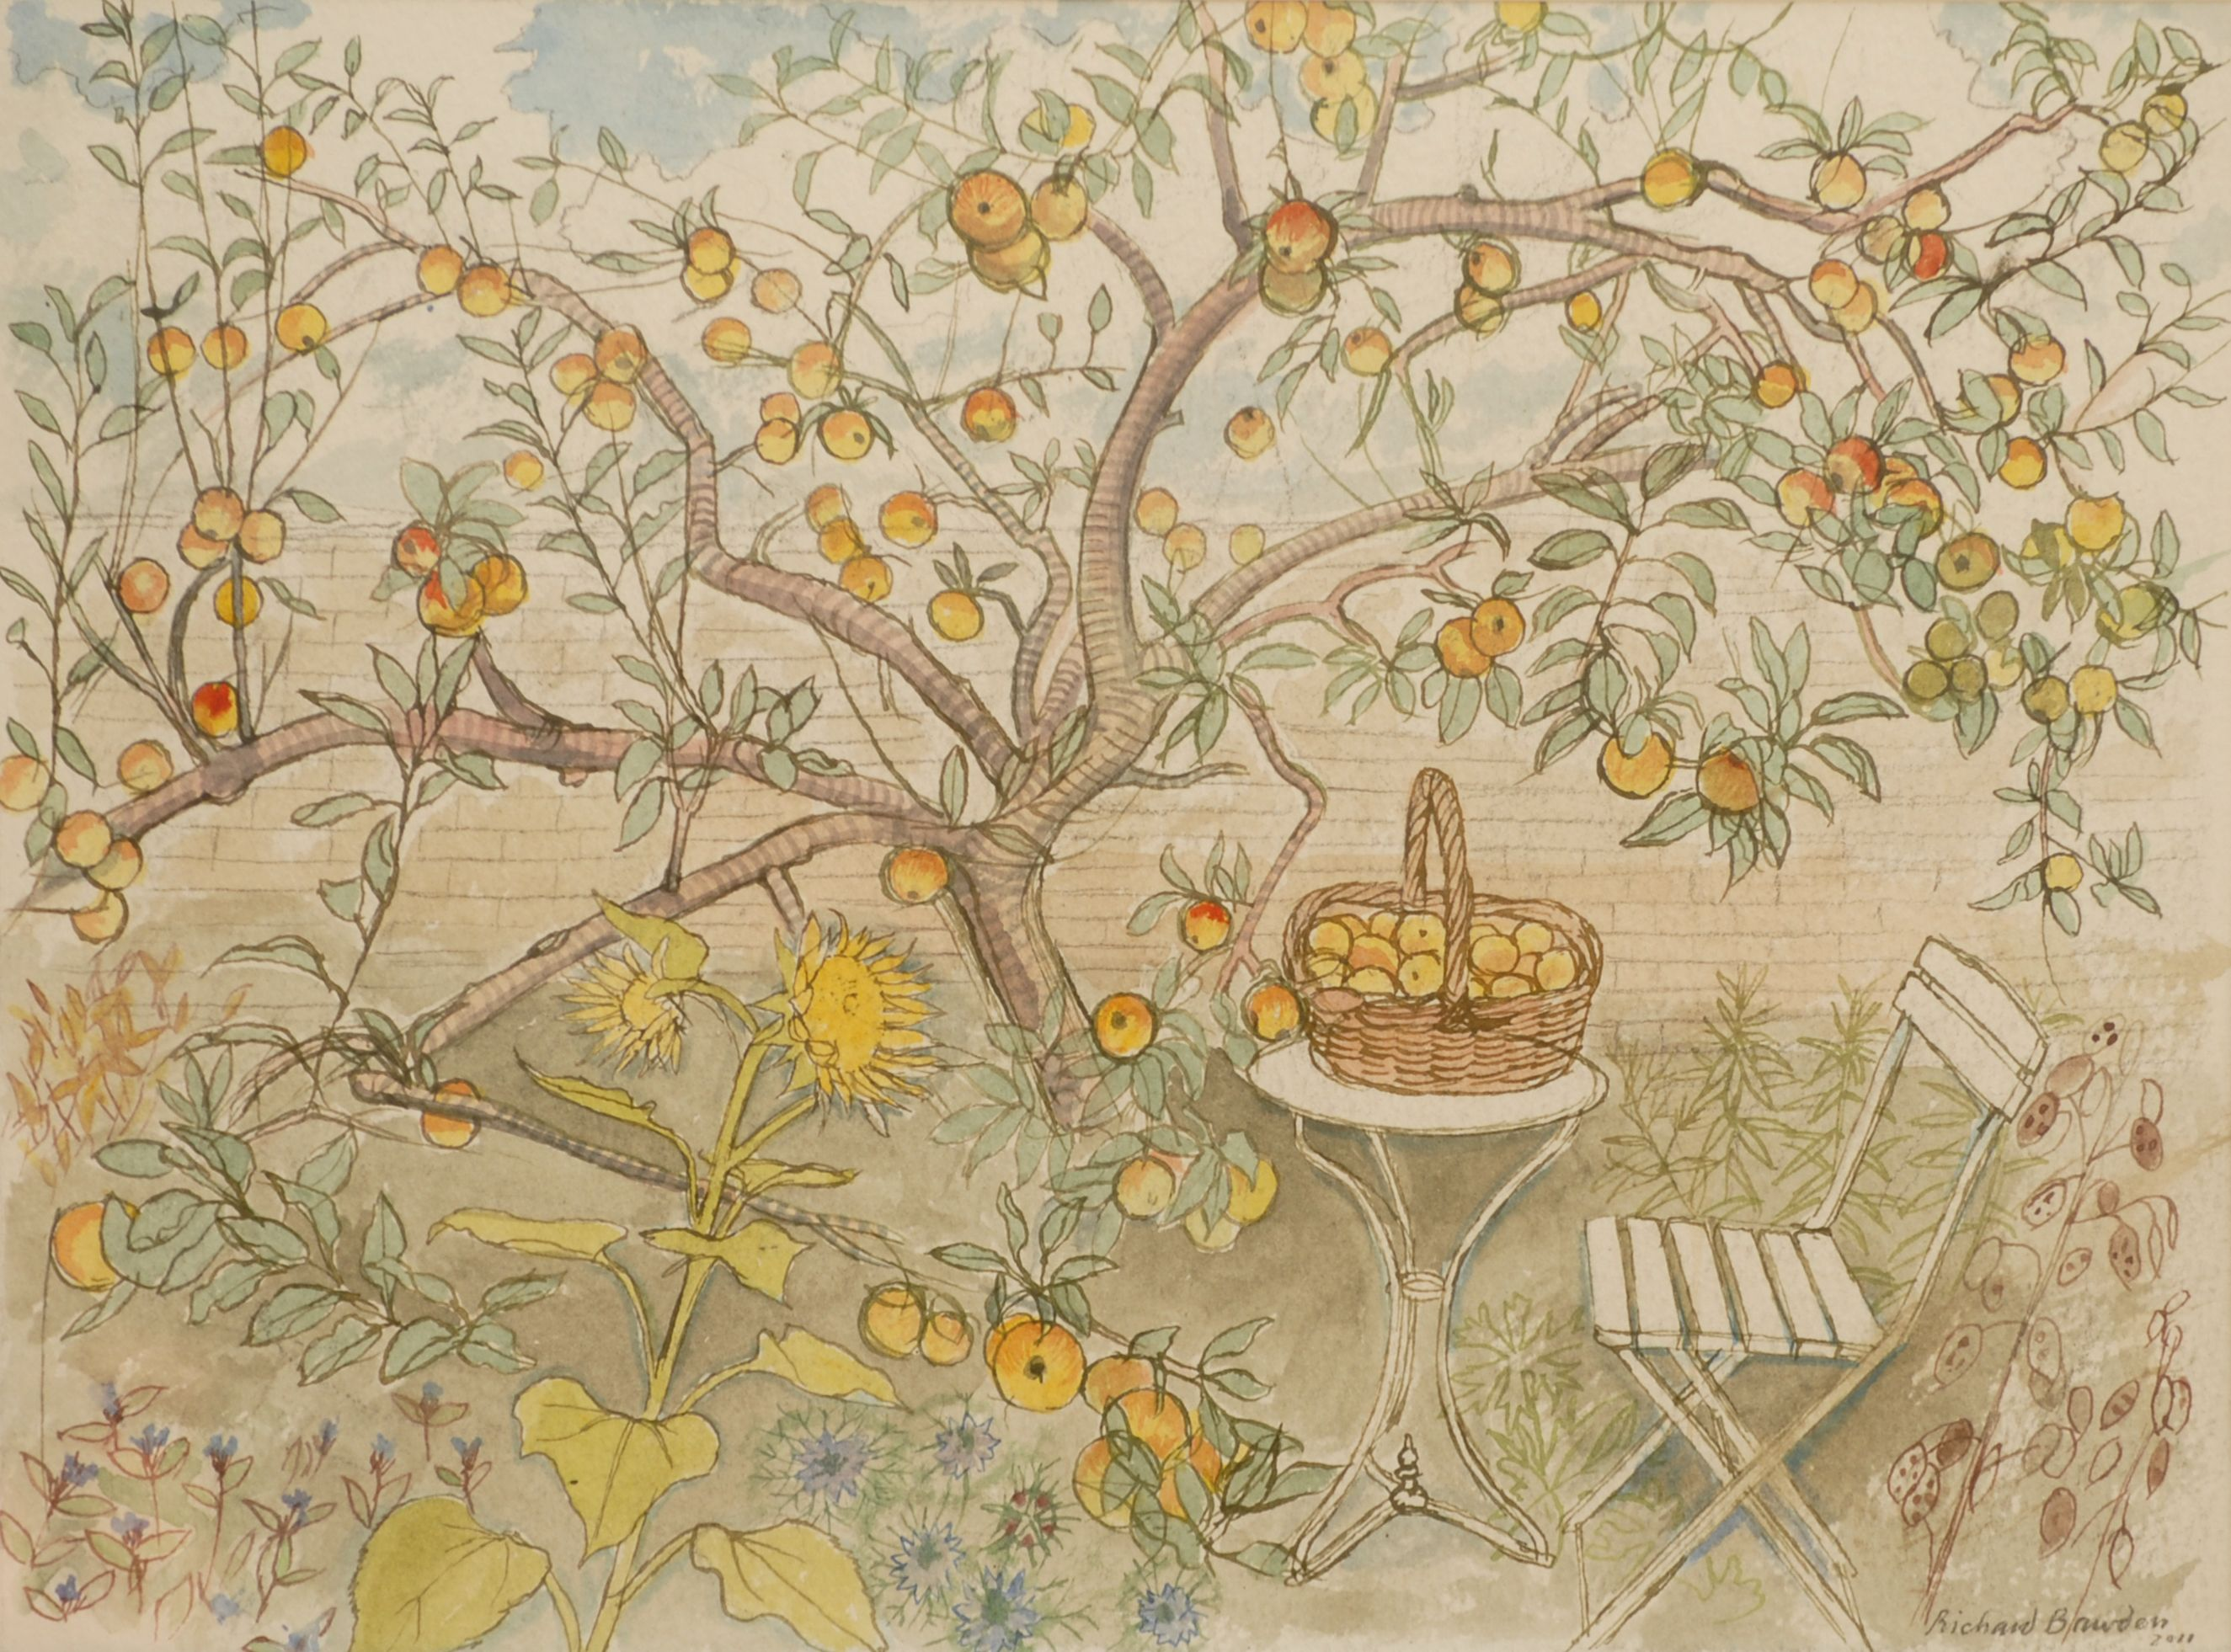 Richard Bawden RE RWS, Apples, Watercolour, POA,  Contact info@banksidegallery.com for further details. See www.banksidegallery.com for other prints and